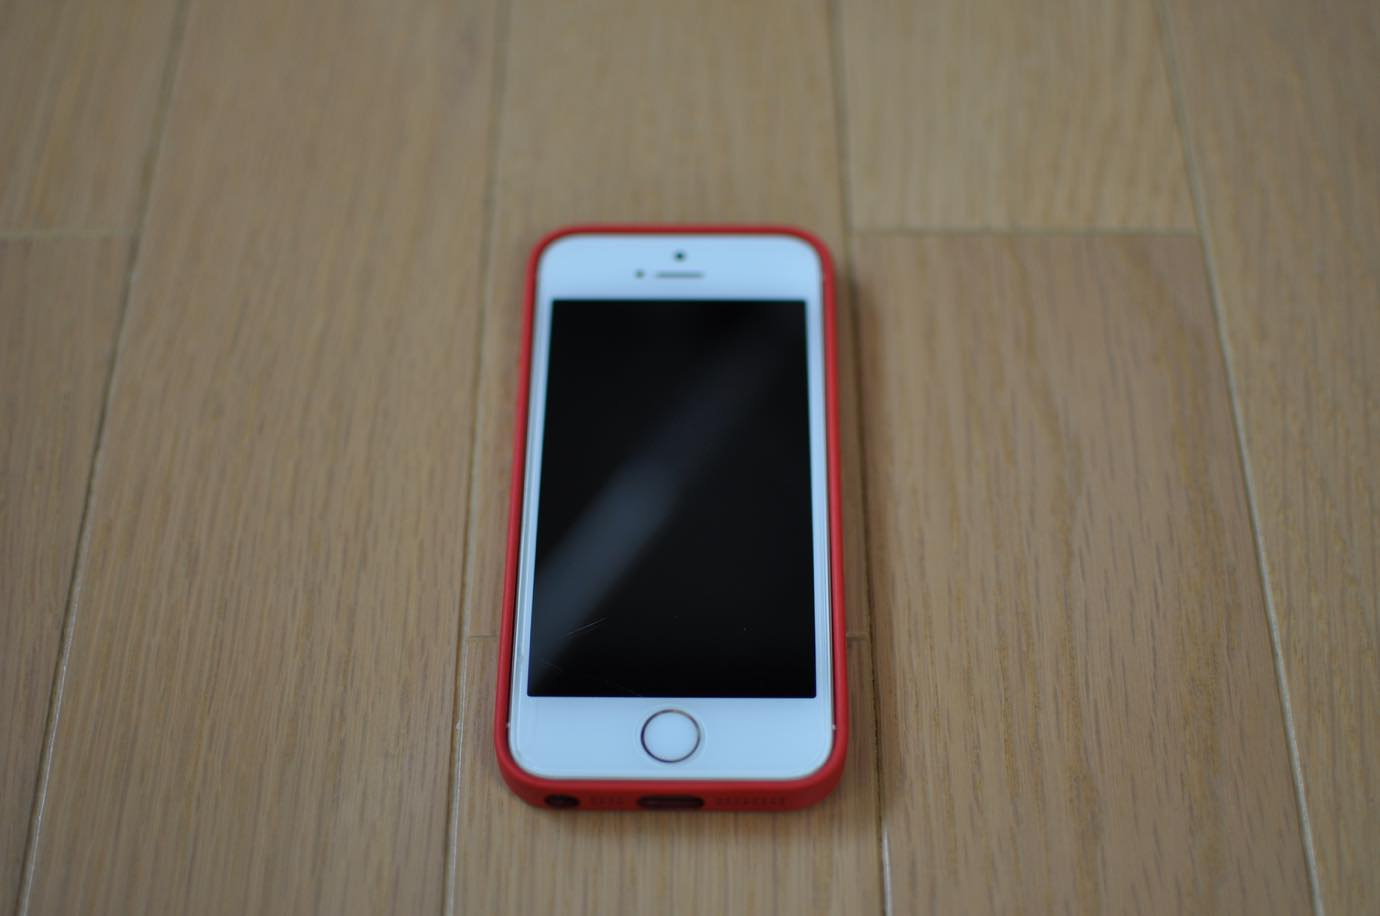 IPhone 5s Case   PRODUCT RED 10 20141215 214946